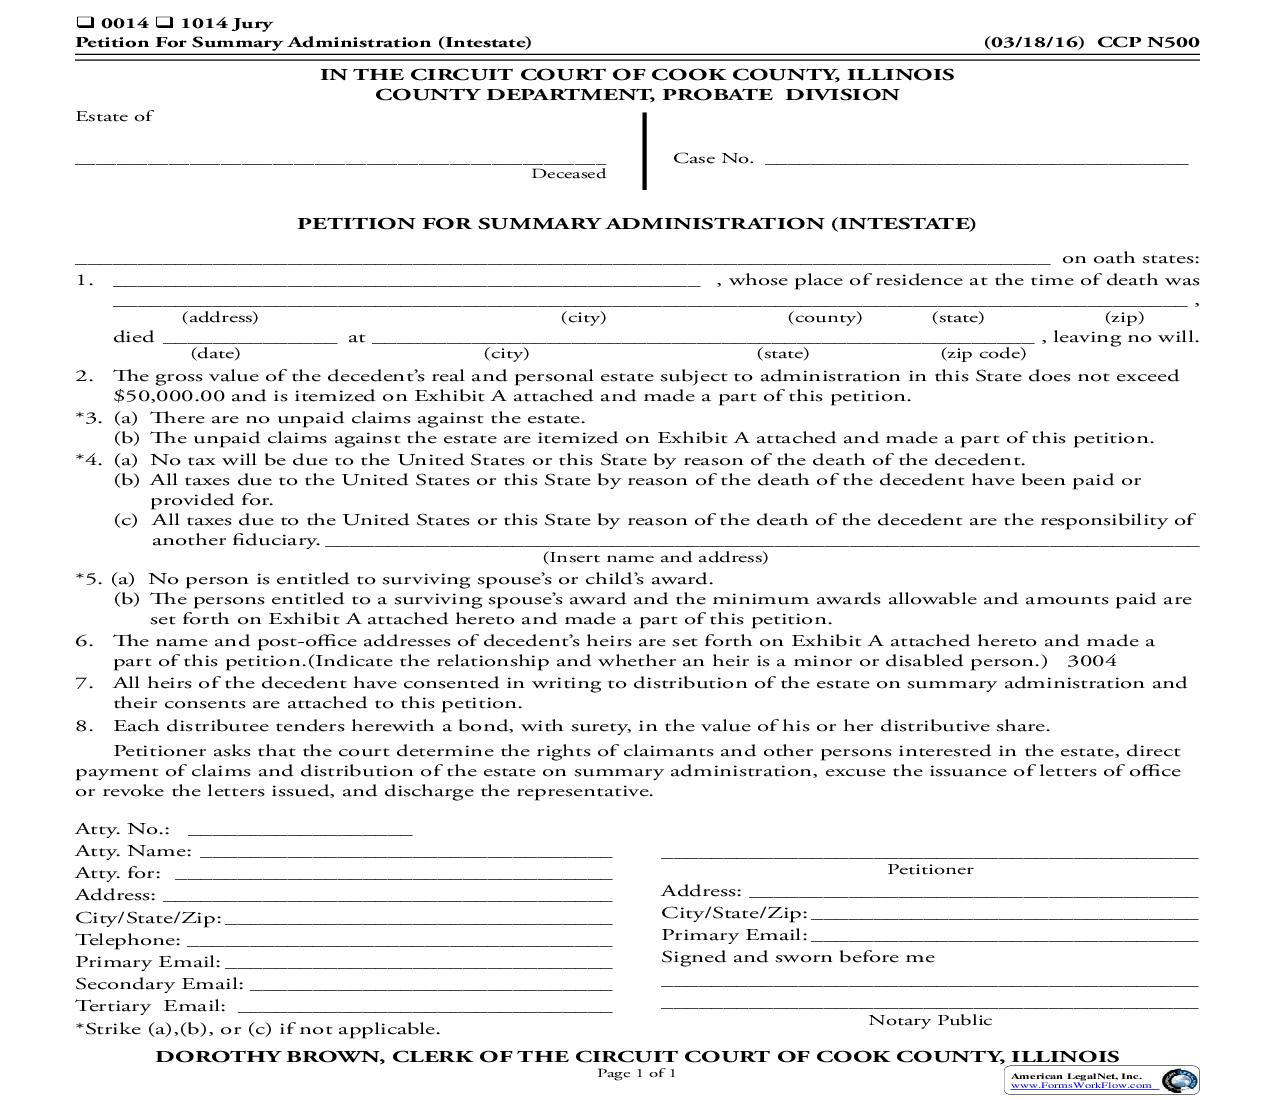 Petition For Summary Administration (Intestate) {CCP N500}   Pdf Fpdf Doc Docx   Illinois